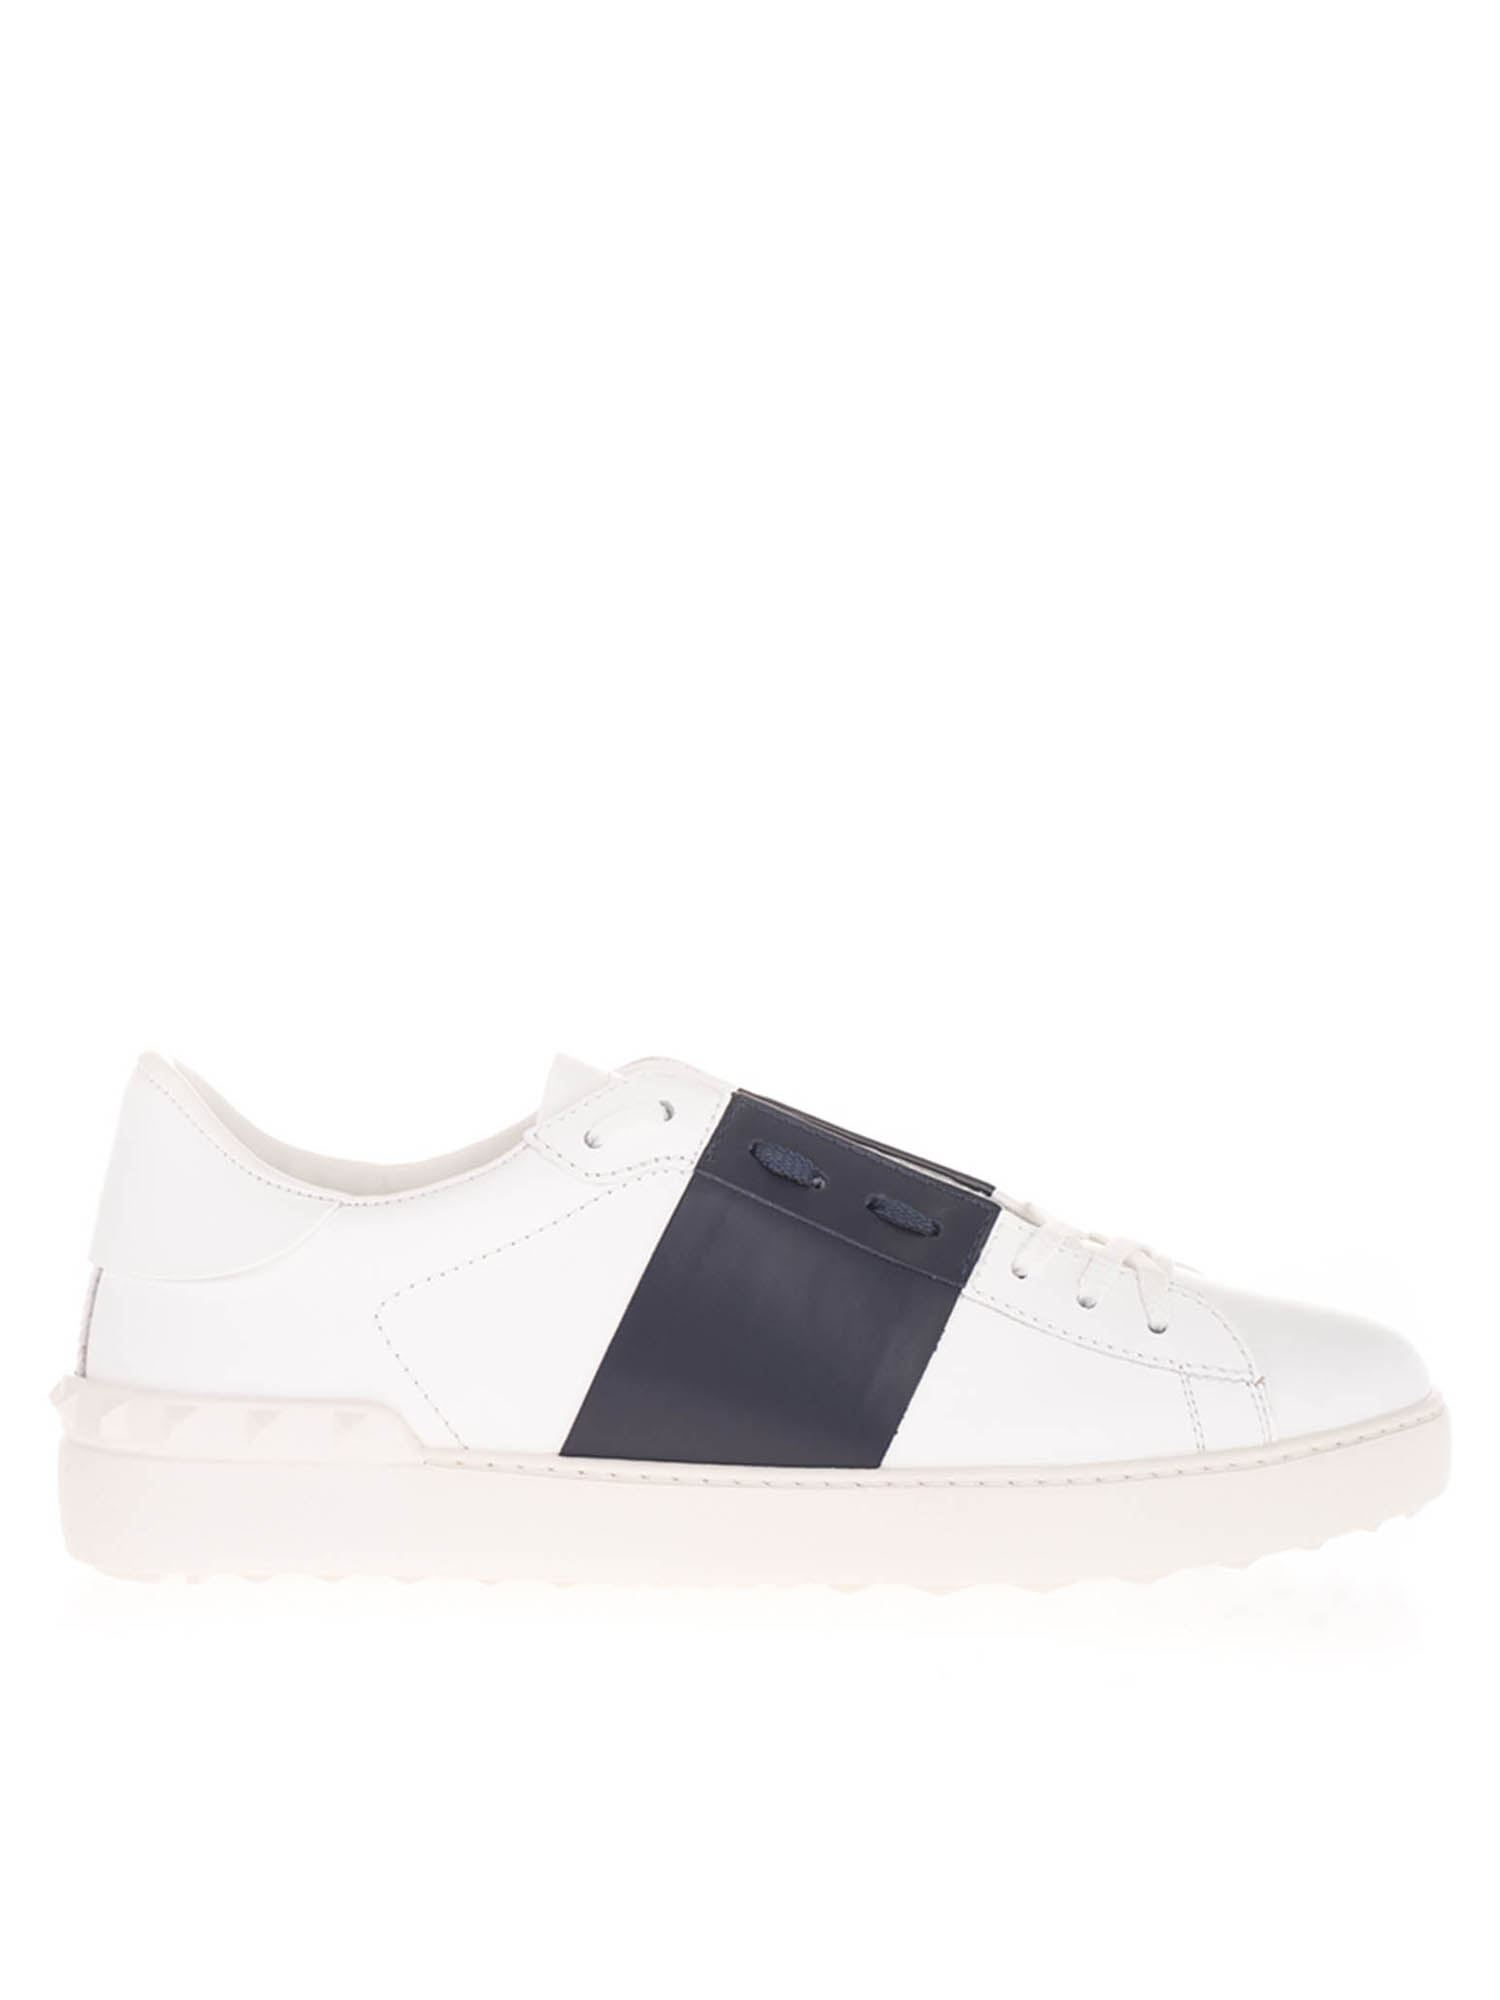 Valentino OPEN SNEAKERS IN WHITE AND MARINE BLUE